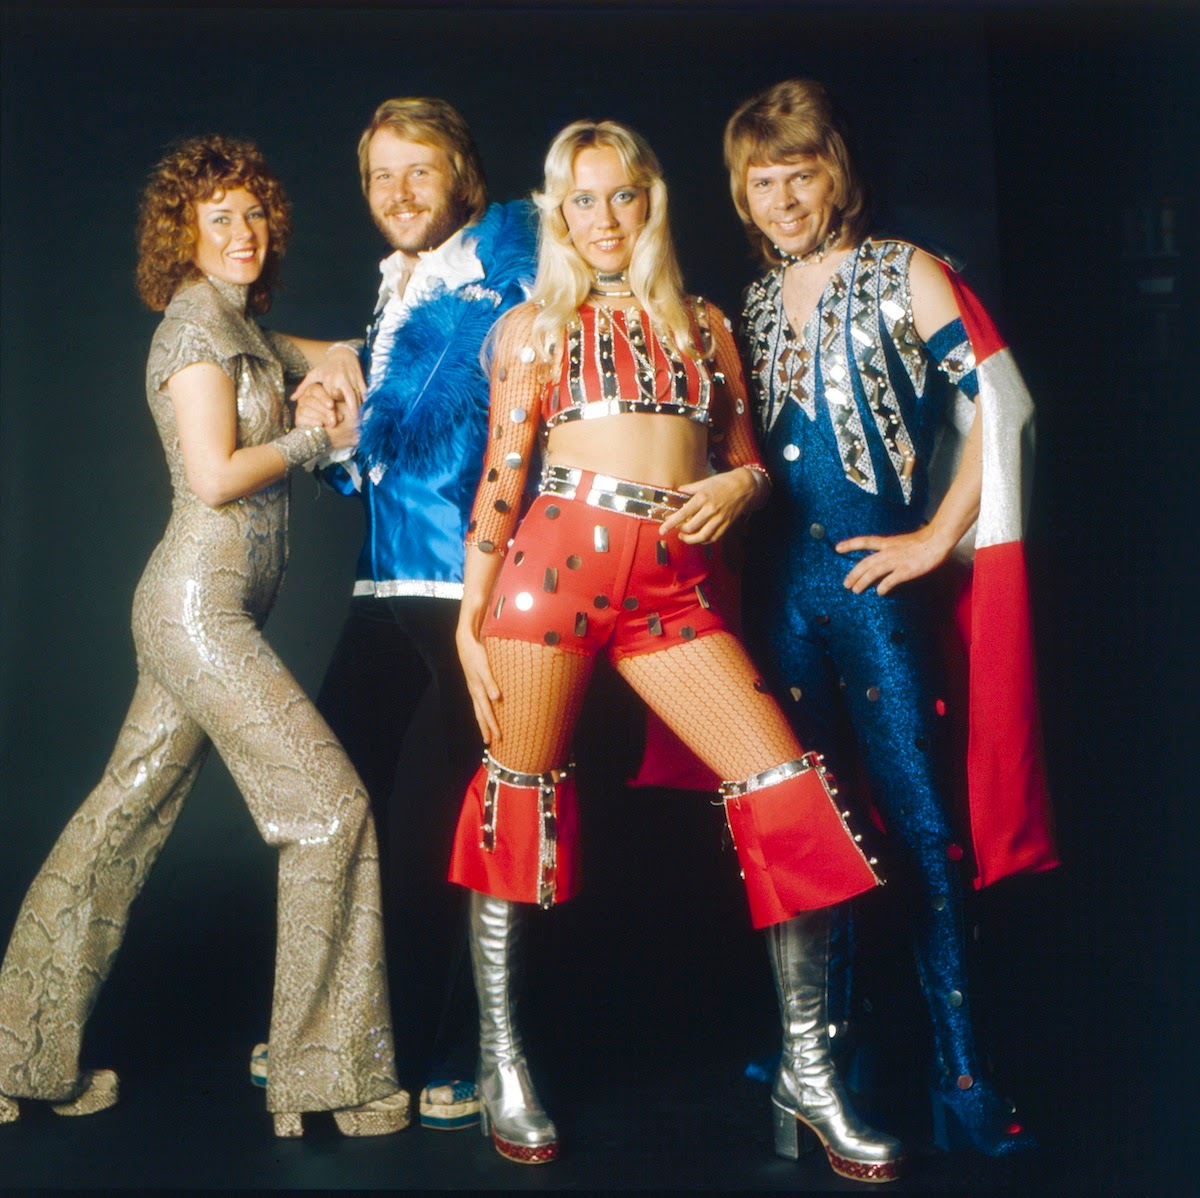 Abba-from-ABBA-The-Official-Photo-Book.jpg